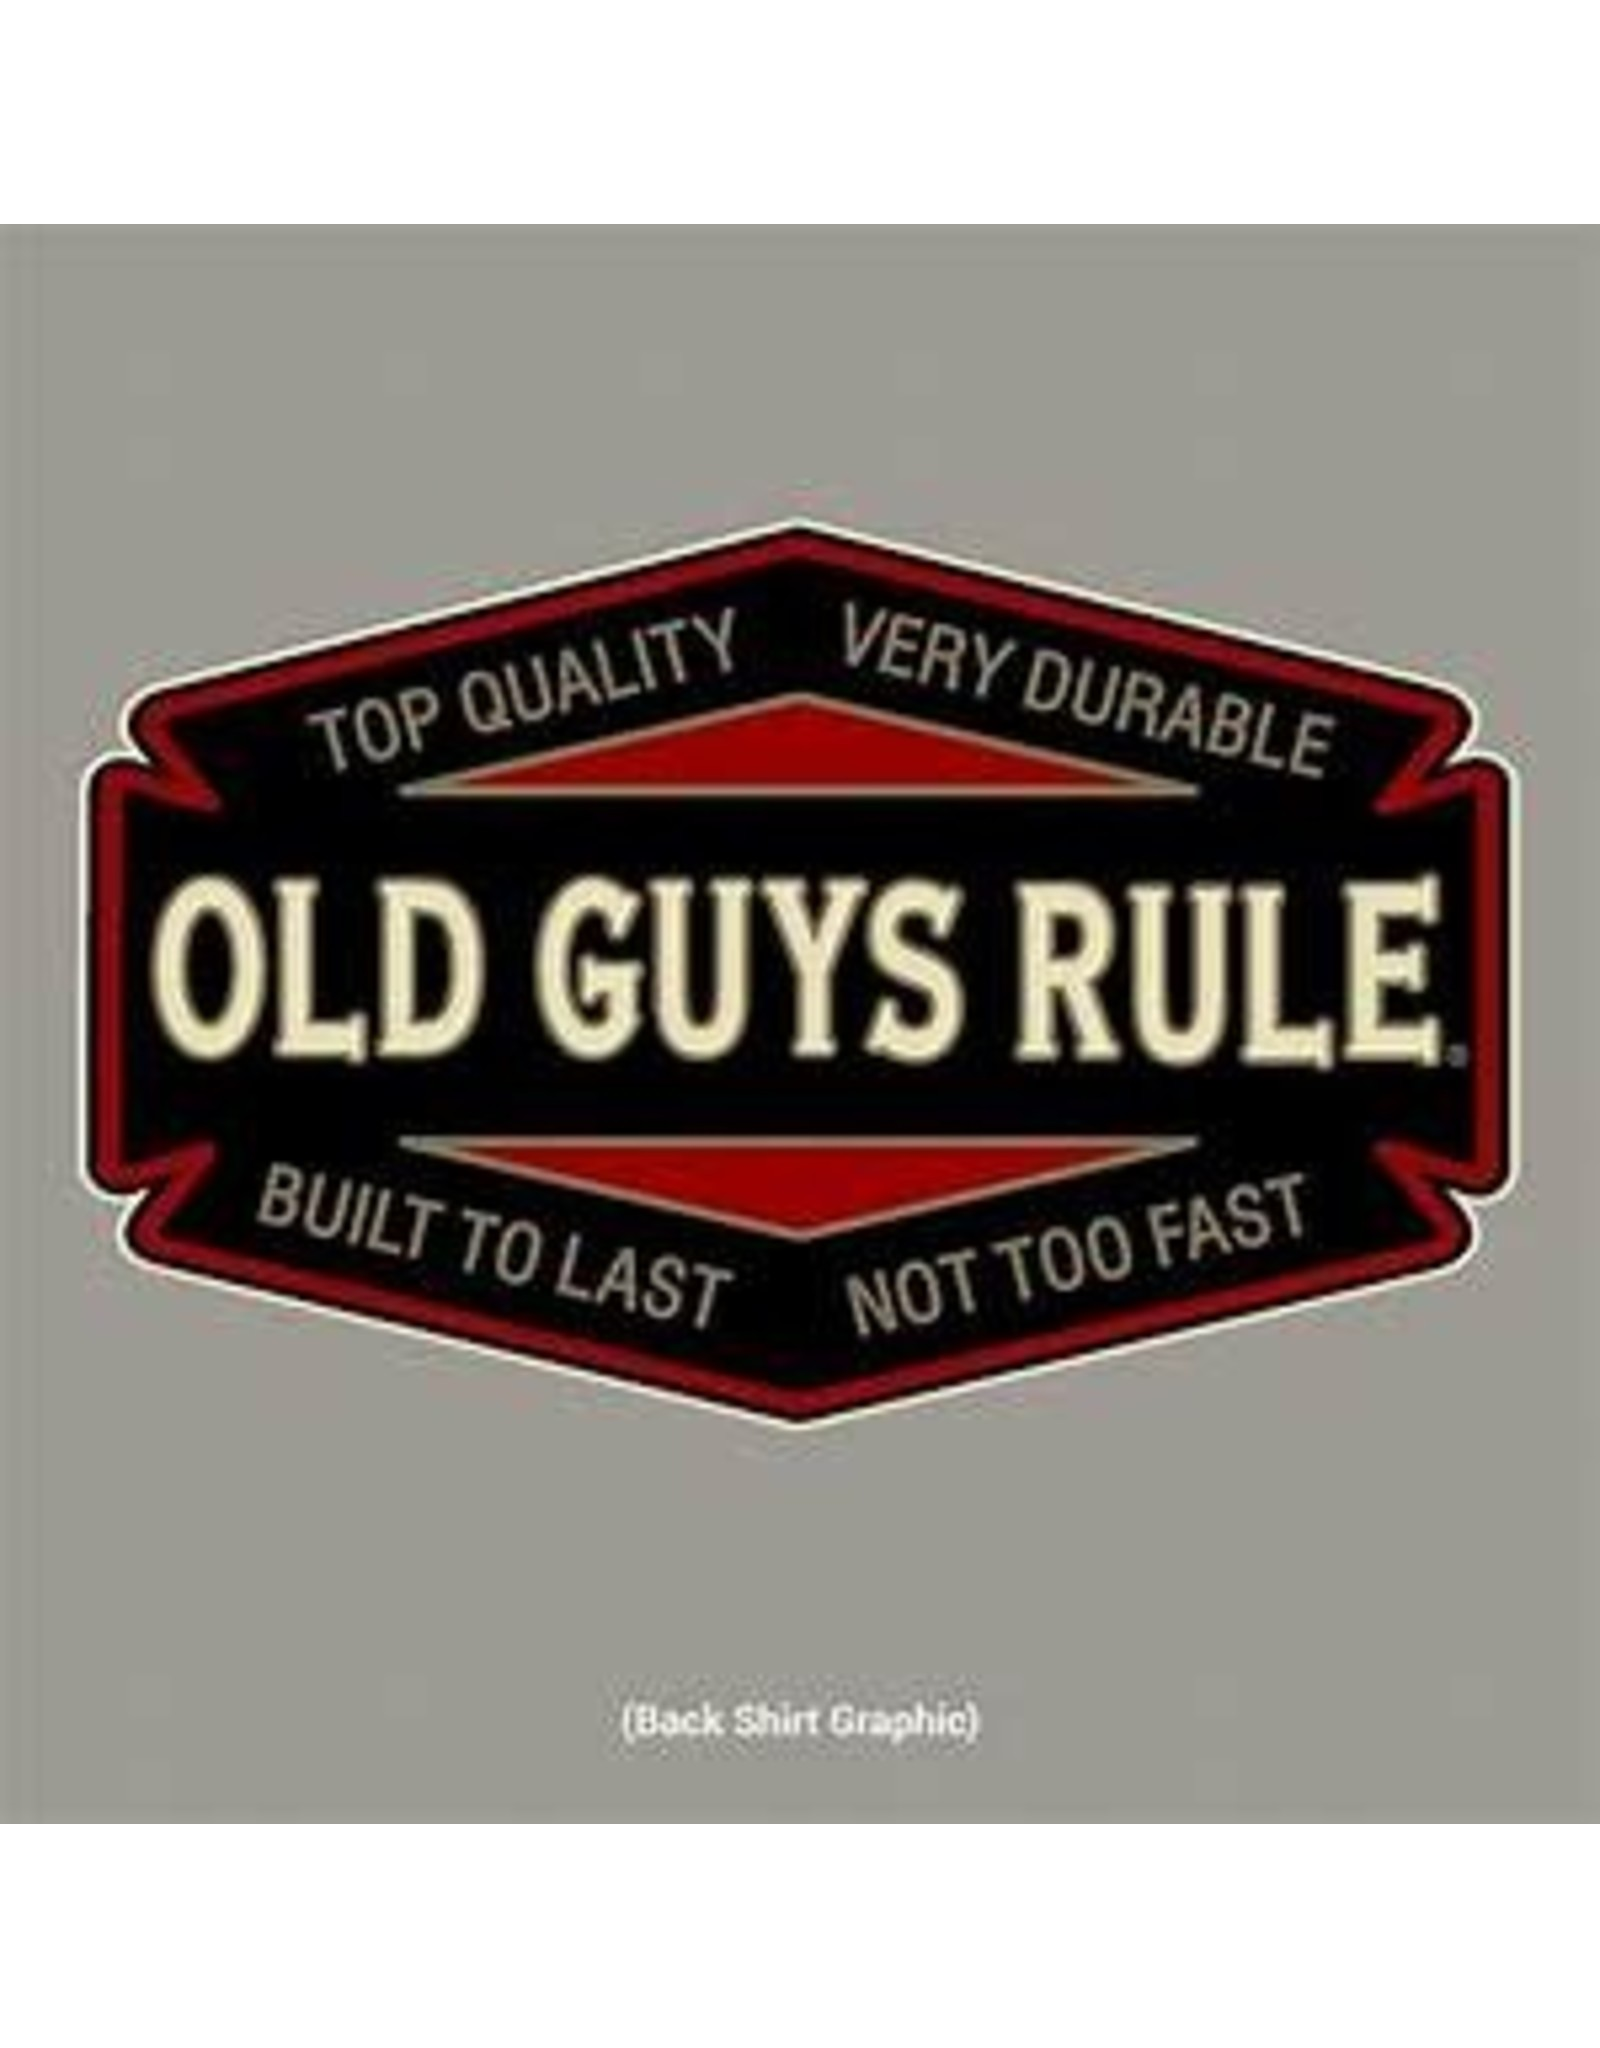 Old Guys Rule Old Guys Rule Shirts